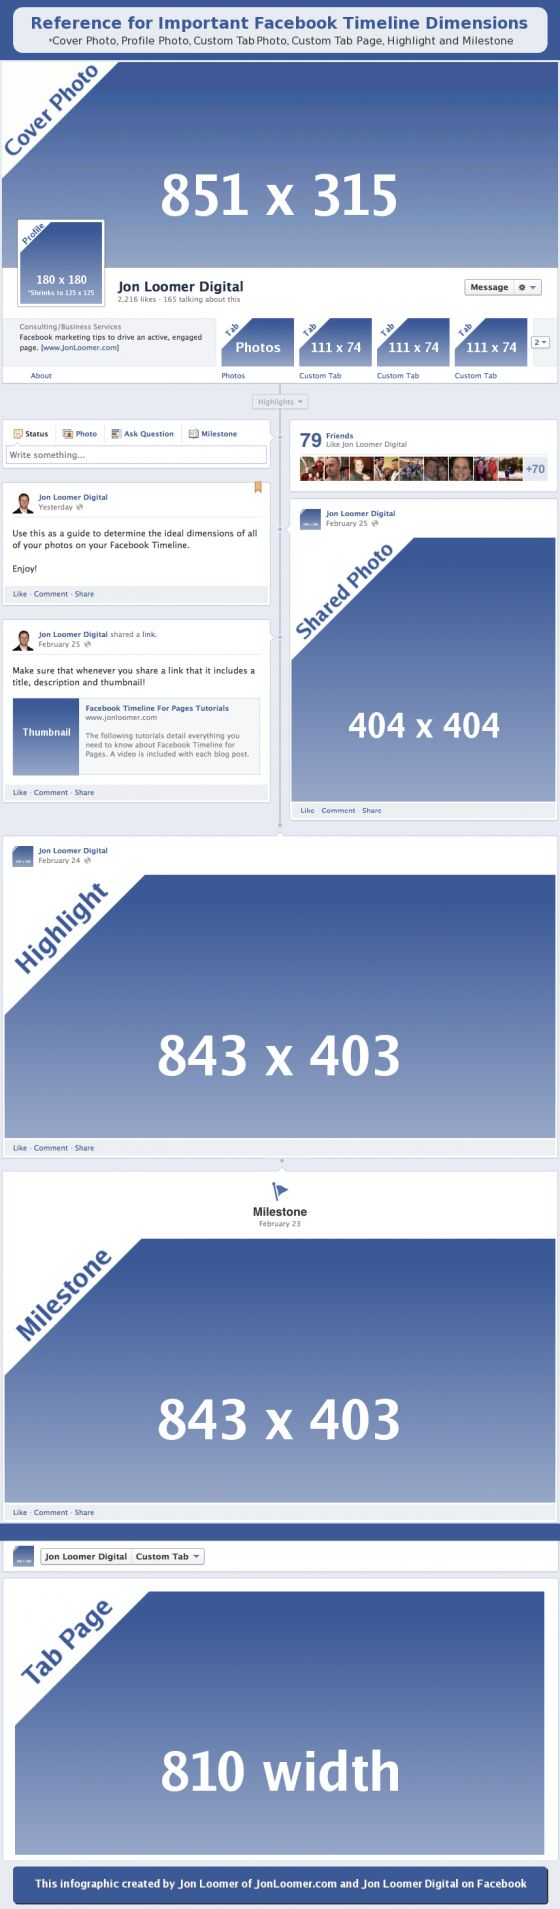 Good info to know for all those designers using #Facebook as a marketing tool. Maybe now we'll see better and nicer images... probably not :(